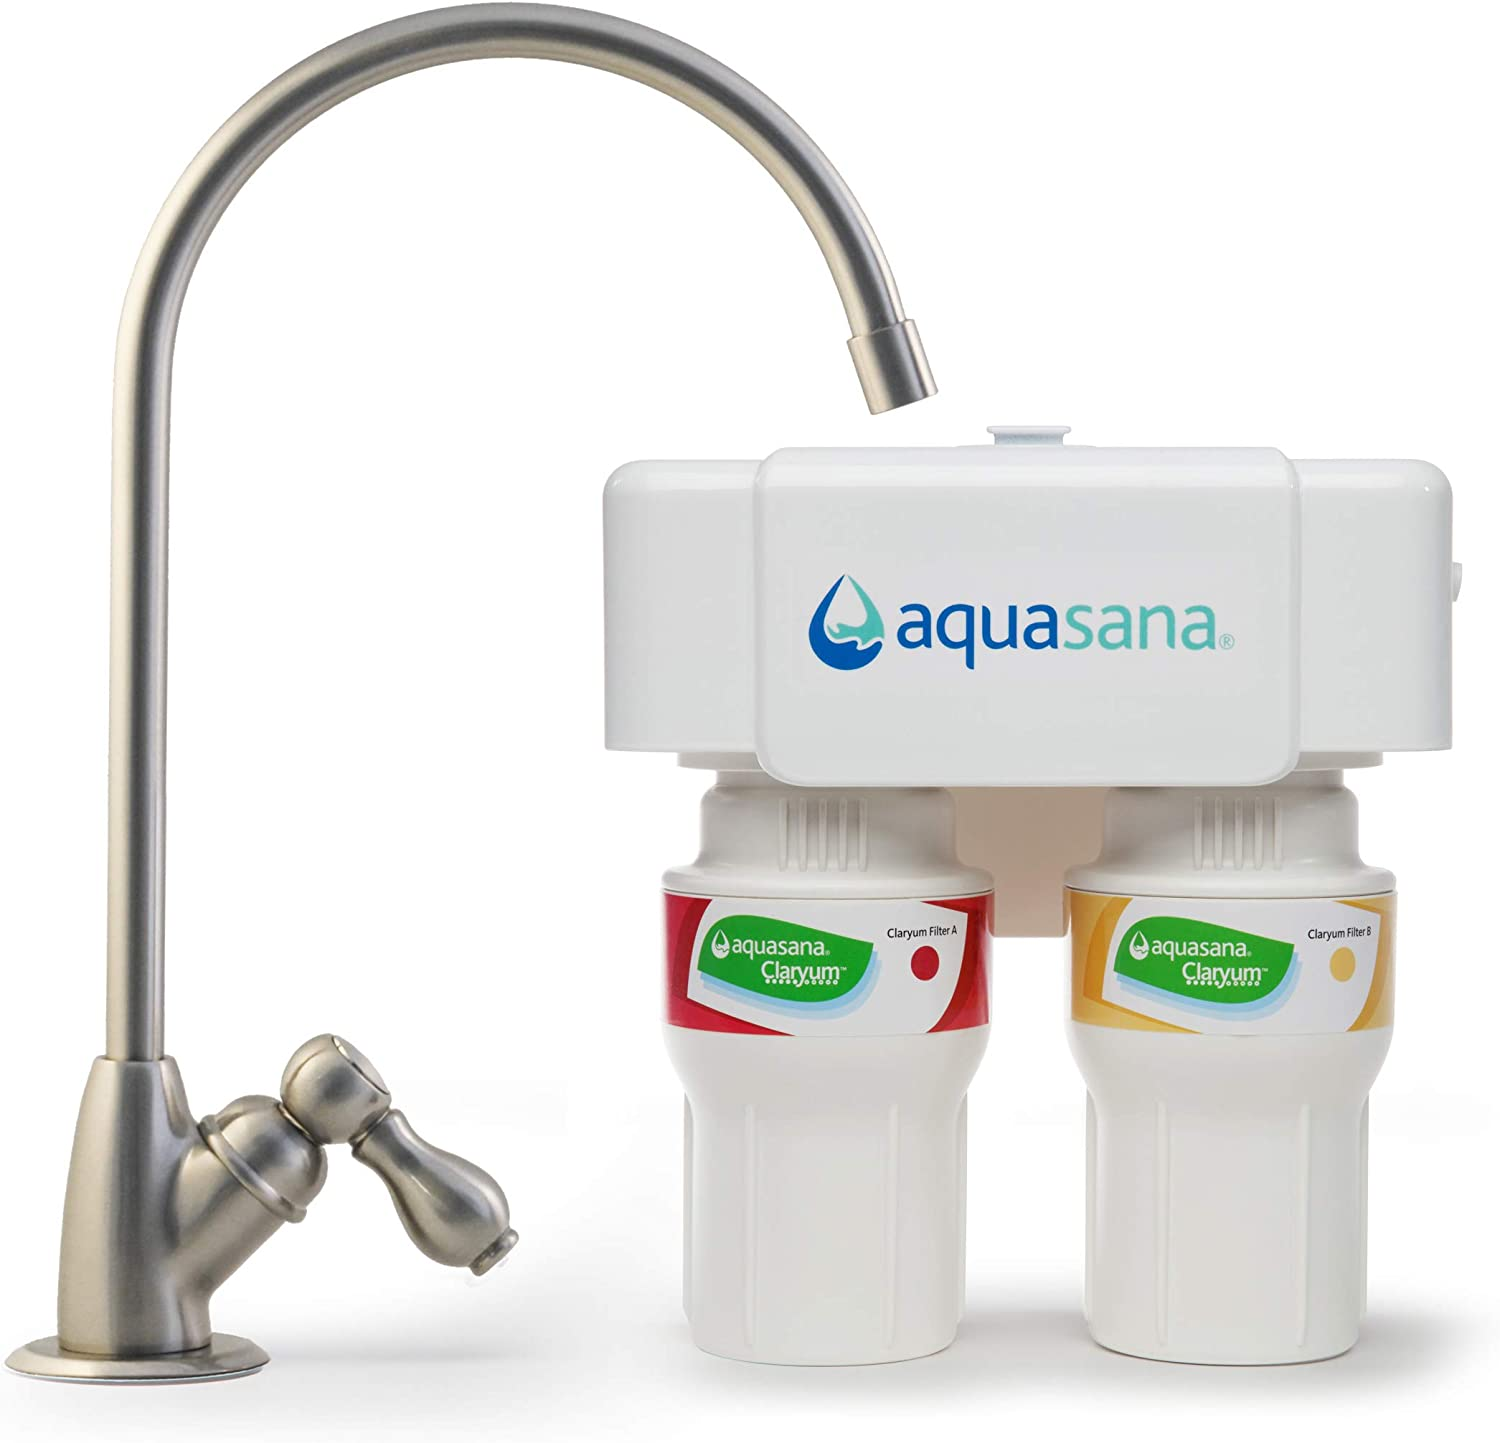 Aquasana AQ-5200.55 Challenge the lowest price of Japan ☆ 2-Stage Under Sink with System Filter Water Sale